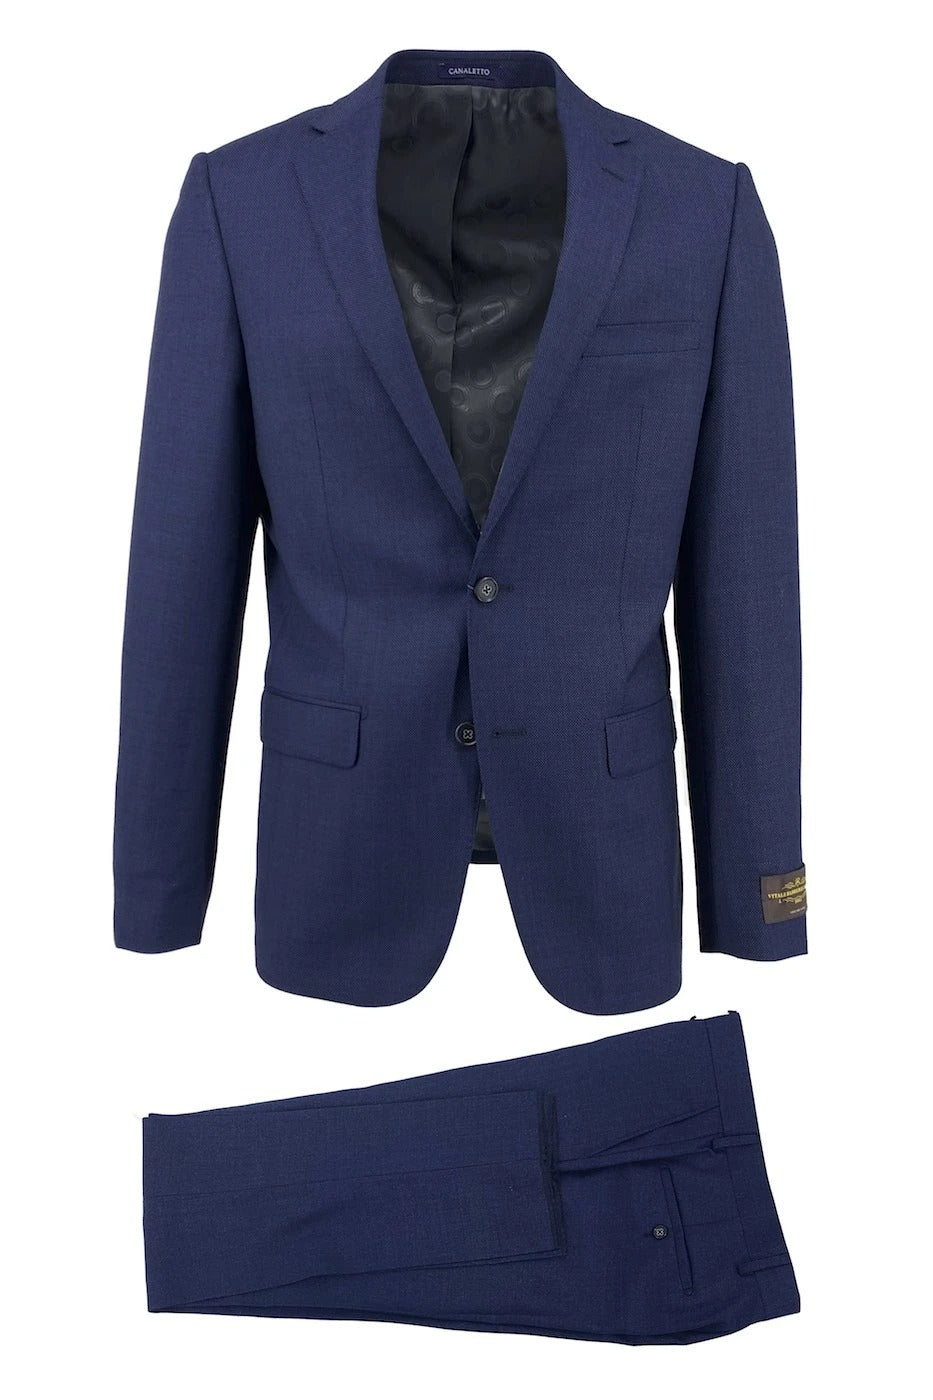 Canaletto Navy Nailhead Vitale Barberis Canonico Cloth Slim Fit Superfine Wool, Porto Suit Slim Fit CV511.801